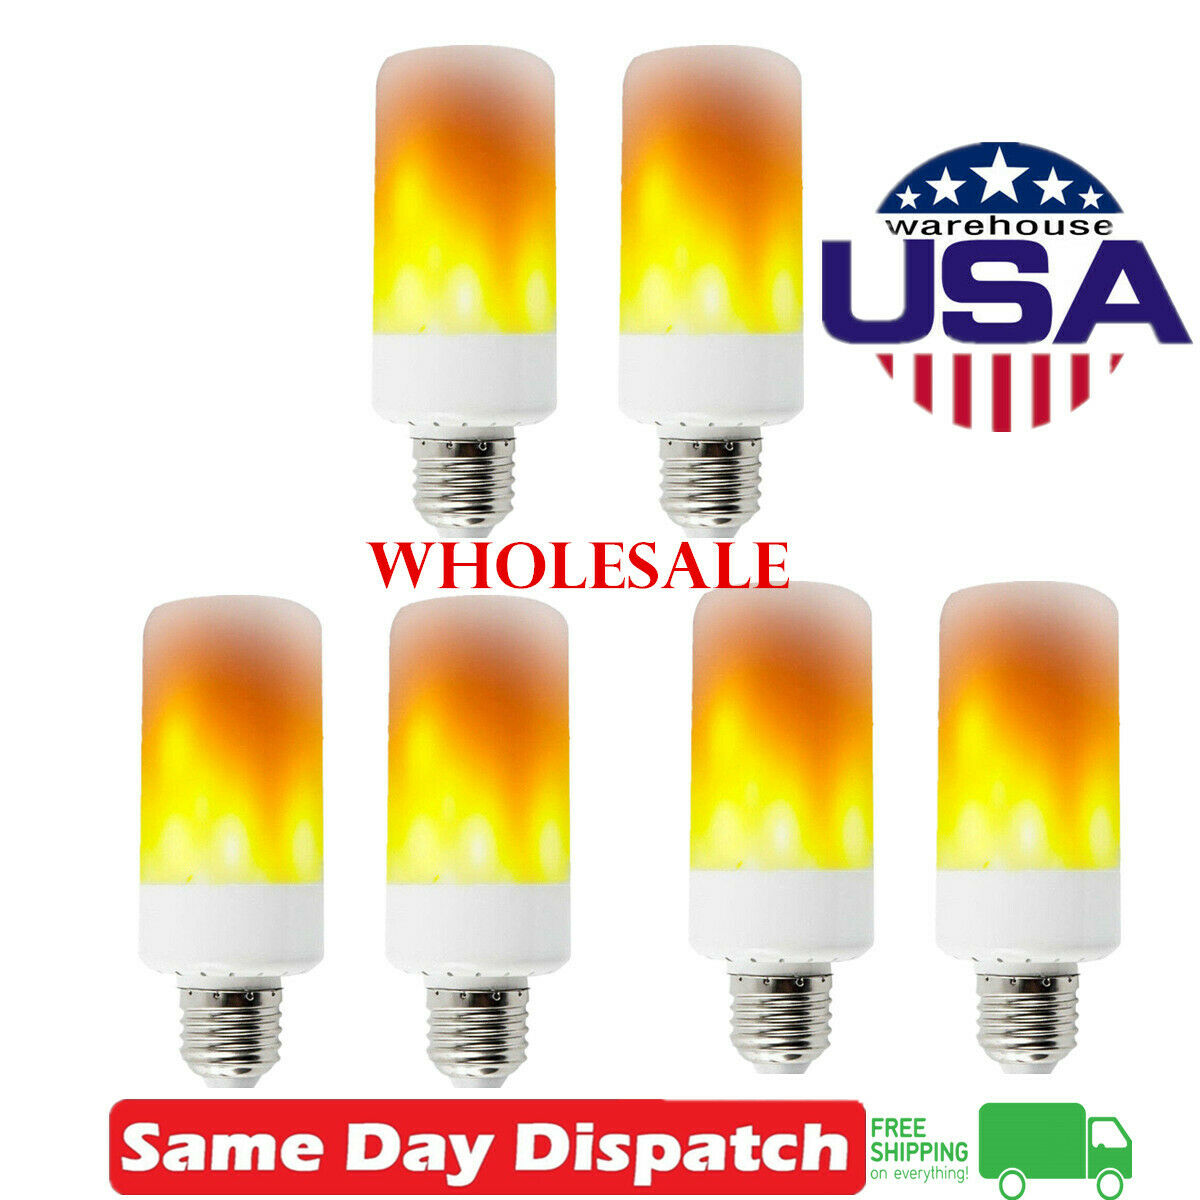 YANGMAN-L E14 LED Candelabra Bulb 9W,Flickering Colorful Flame Light Bulbs E14 Base Flame Effect Light Bulbs for Halloween Hotel Bar Party Decoration,6 Pack